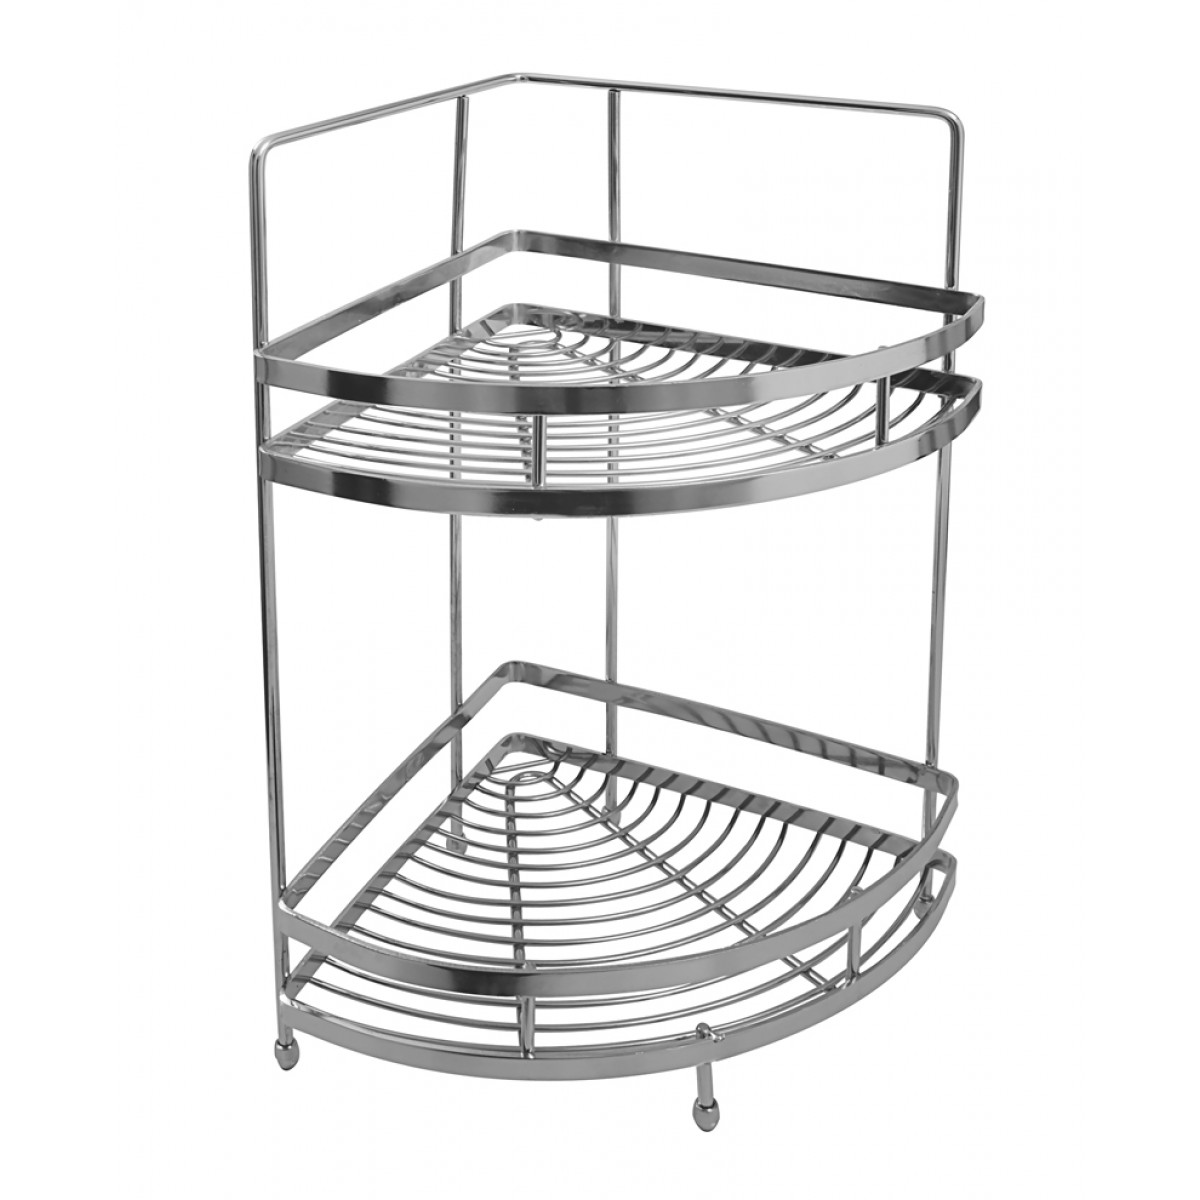 kitchen basket pictures for walls klaxon stainless steel double shelf silver accessories solutions